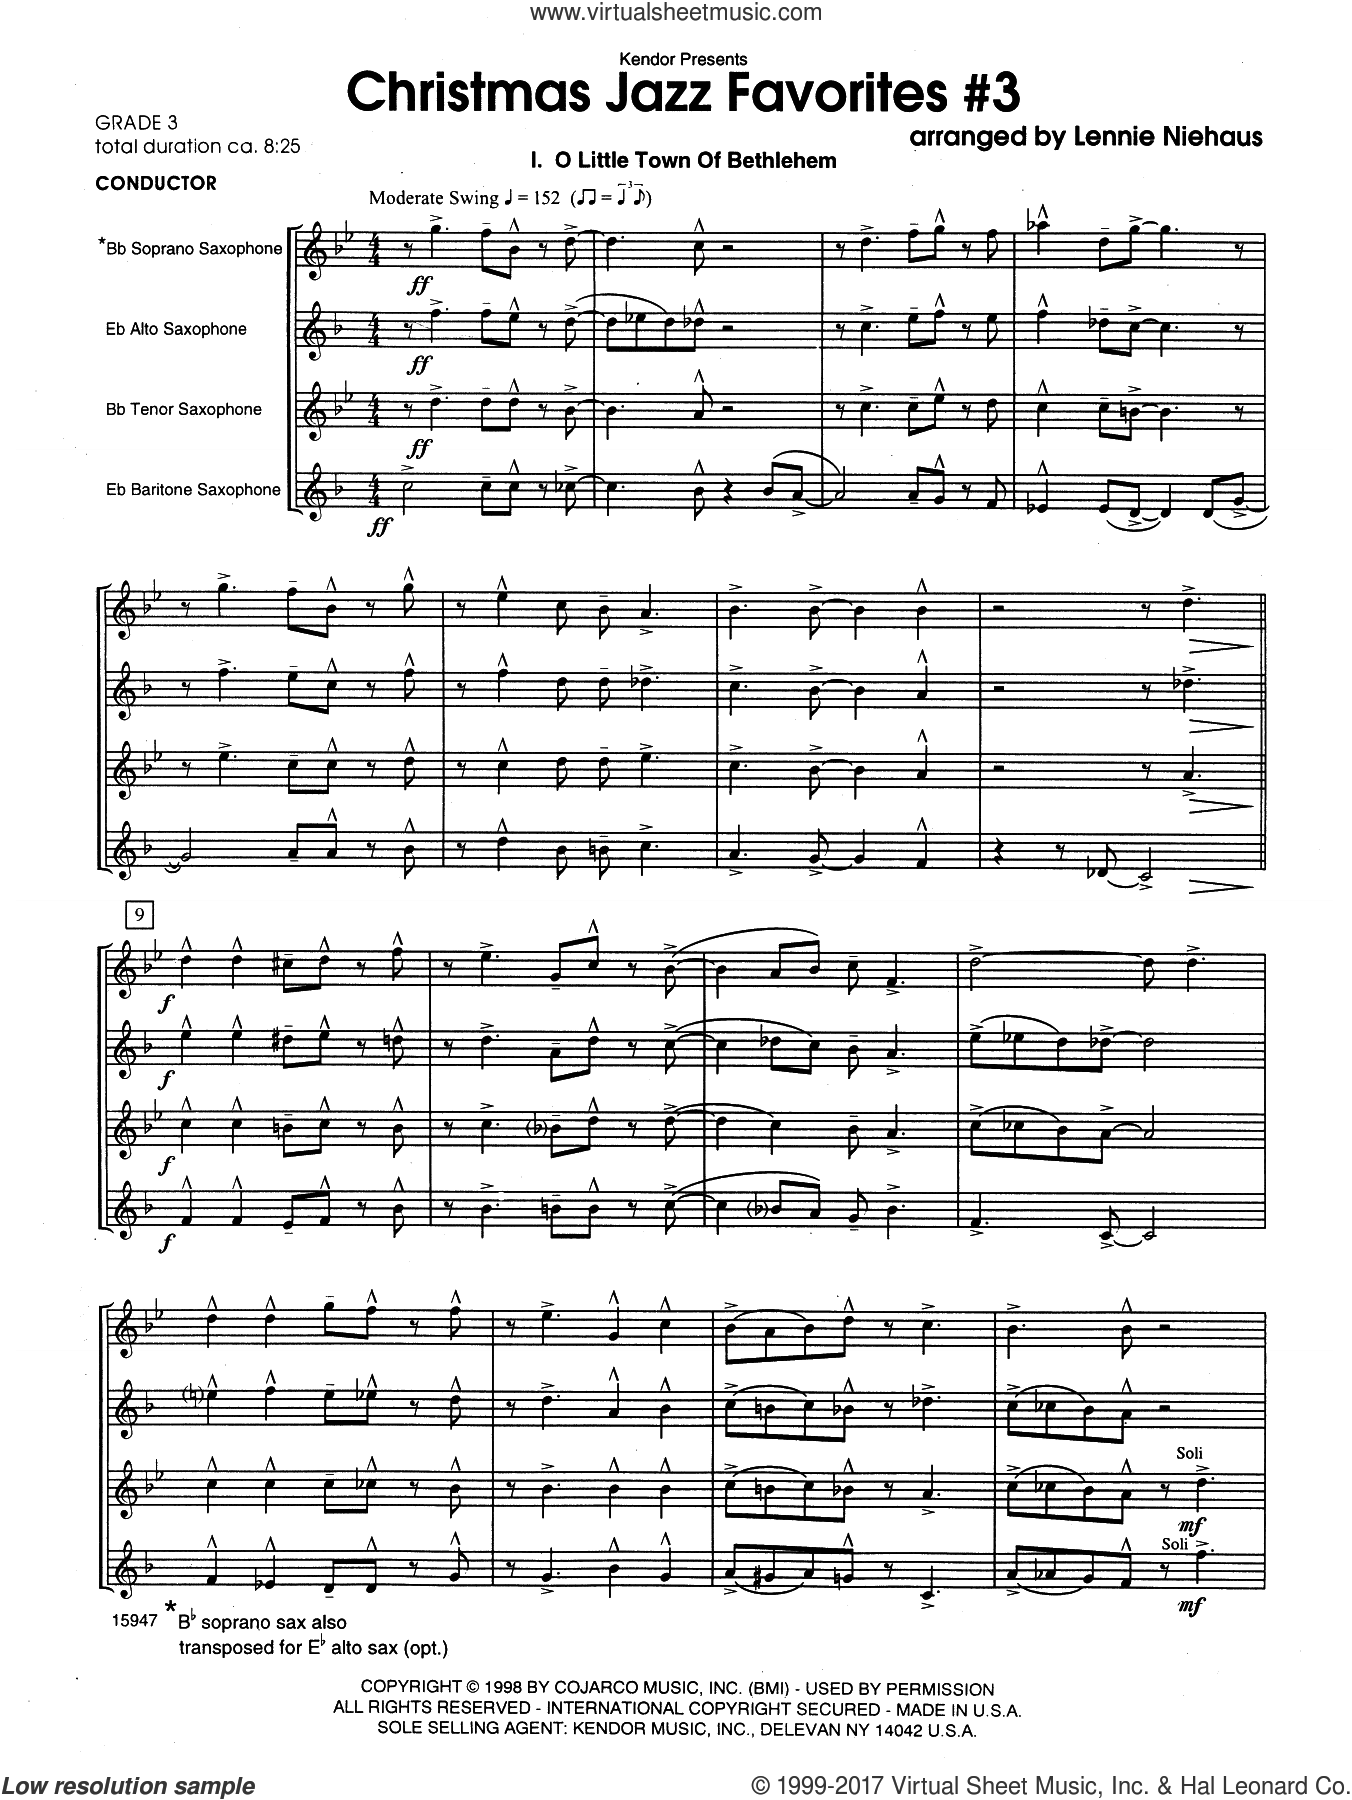 Christmas Jazz Favorites #3 (COMPLETE) sheet music for saxophone quartet by Lennie Niehaus, intermediate. Score Image Preview.